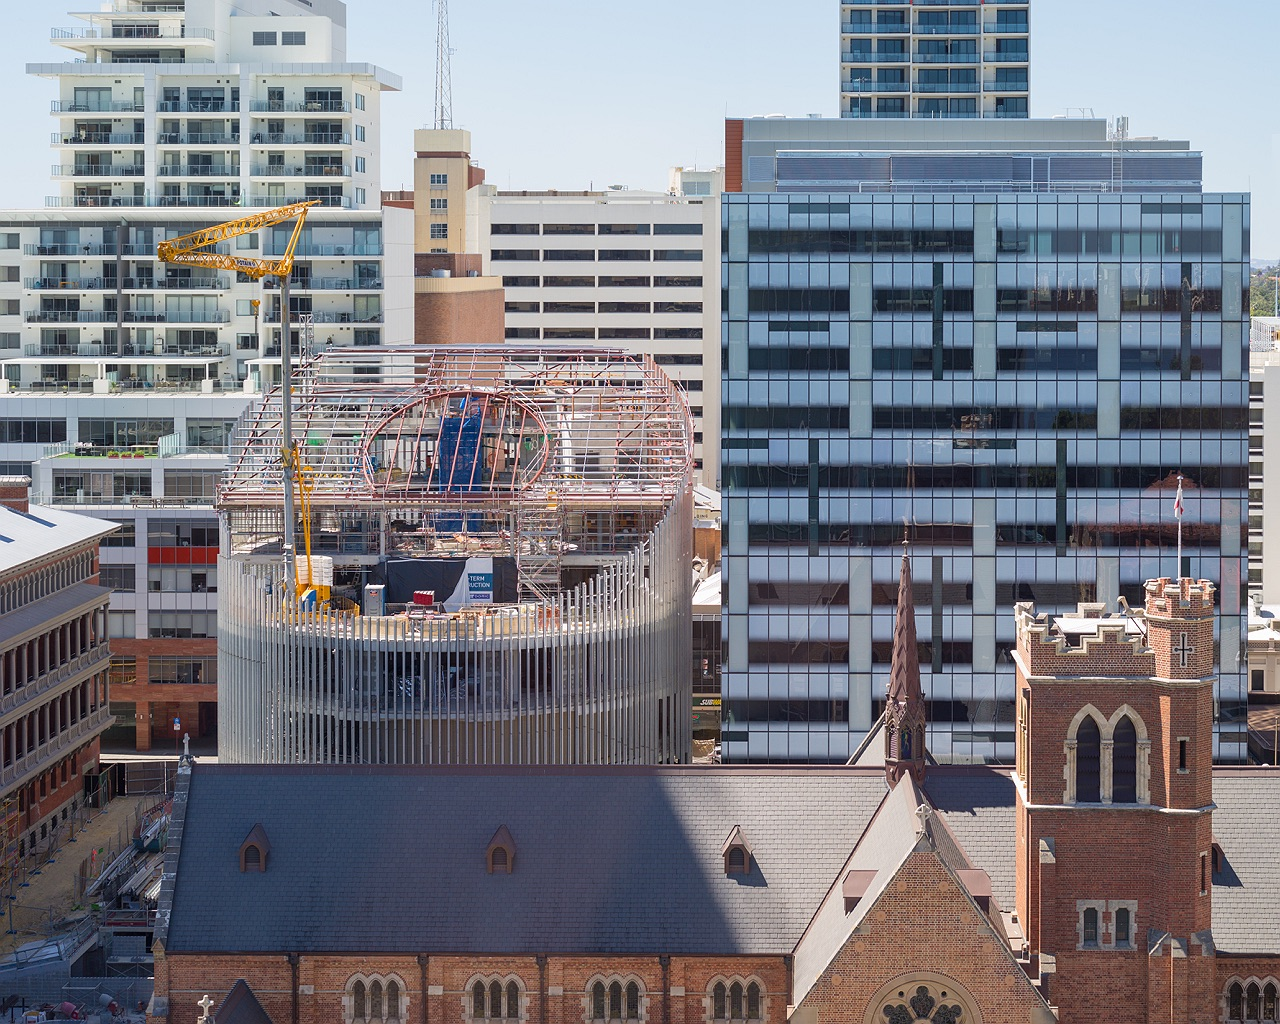 open_house_perth_skyscrapers_2014_34